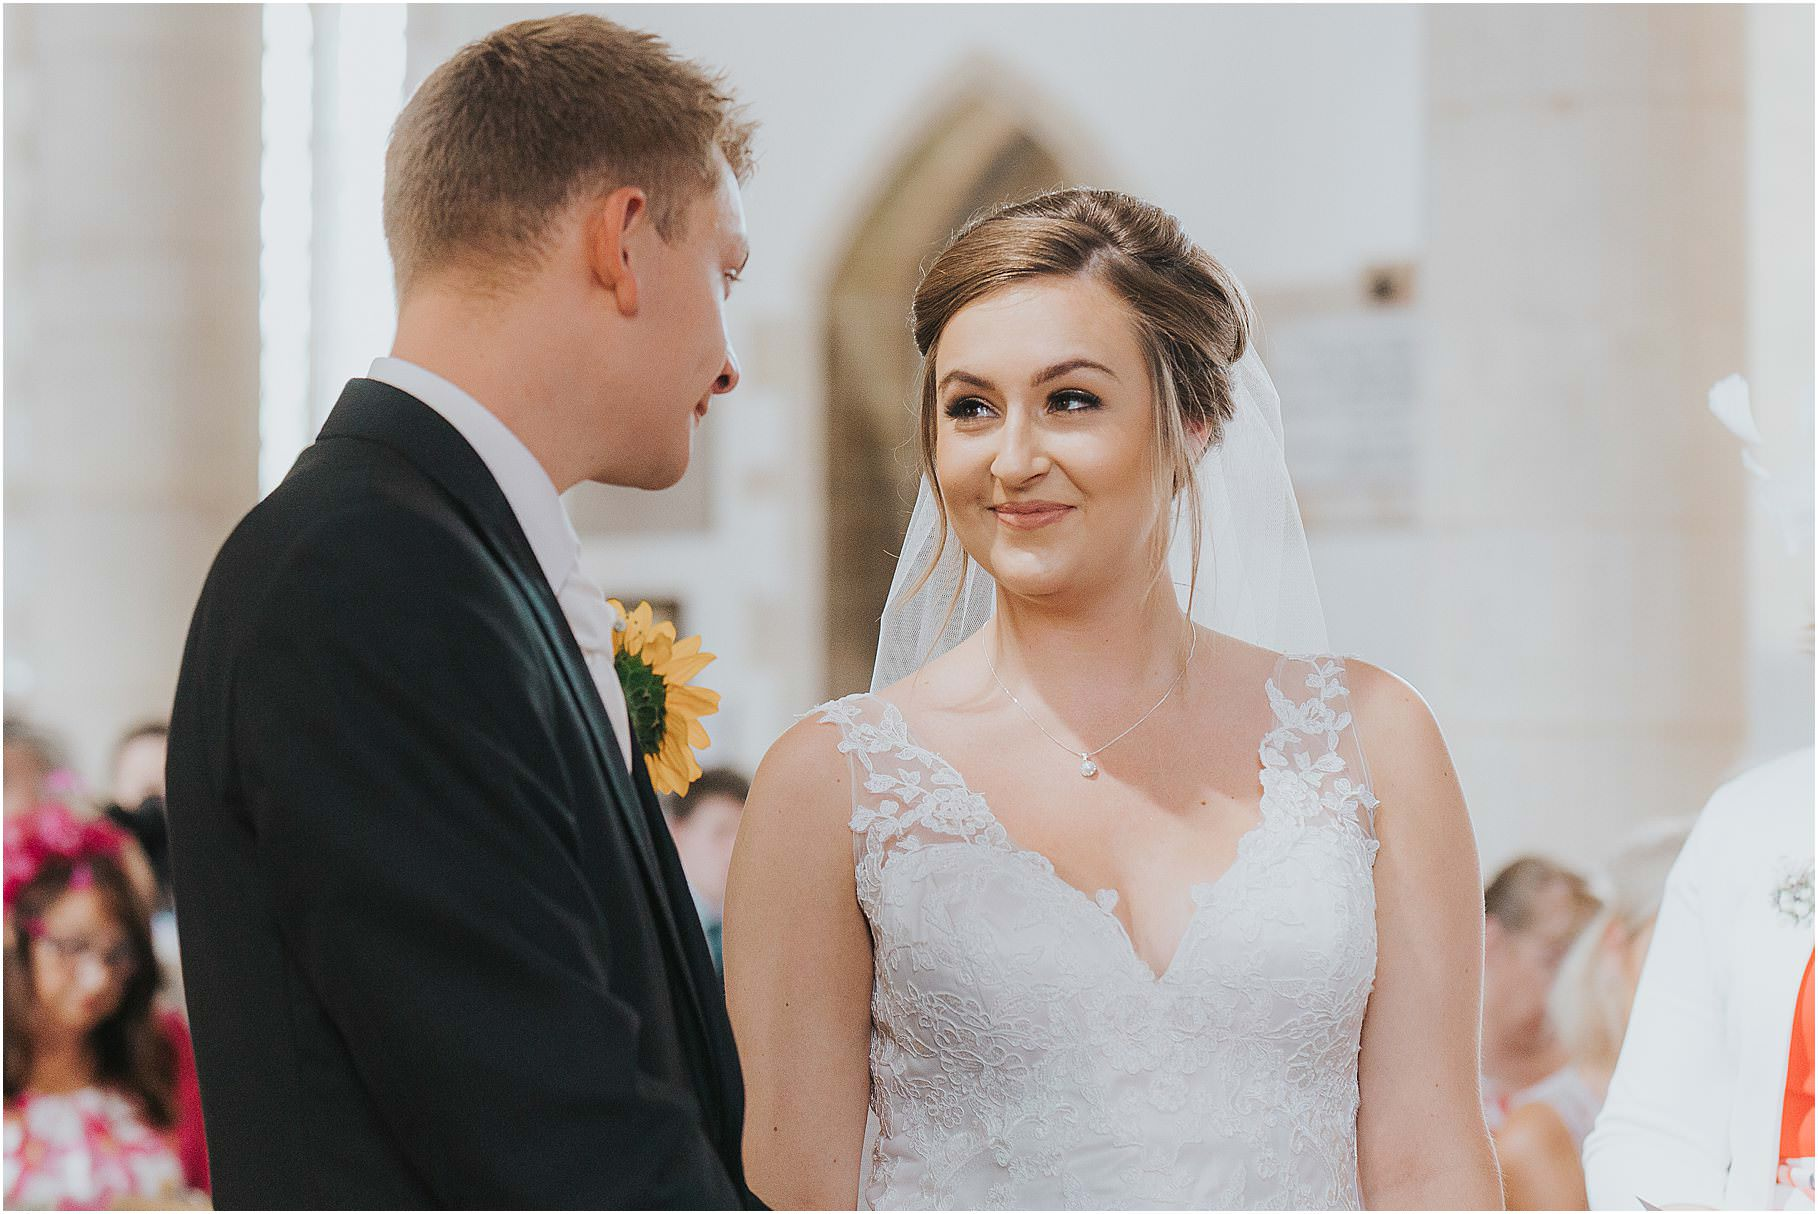 Rutland Weddings Exton Hall Exton Oakham Rutland Water Photographer 1050 - Mr and Mrs Barker // RUTLAND WEDDING